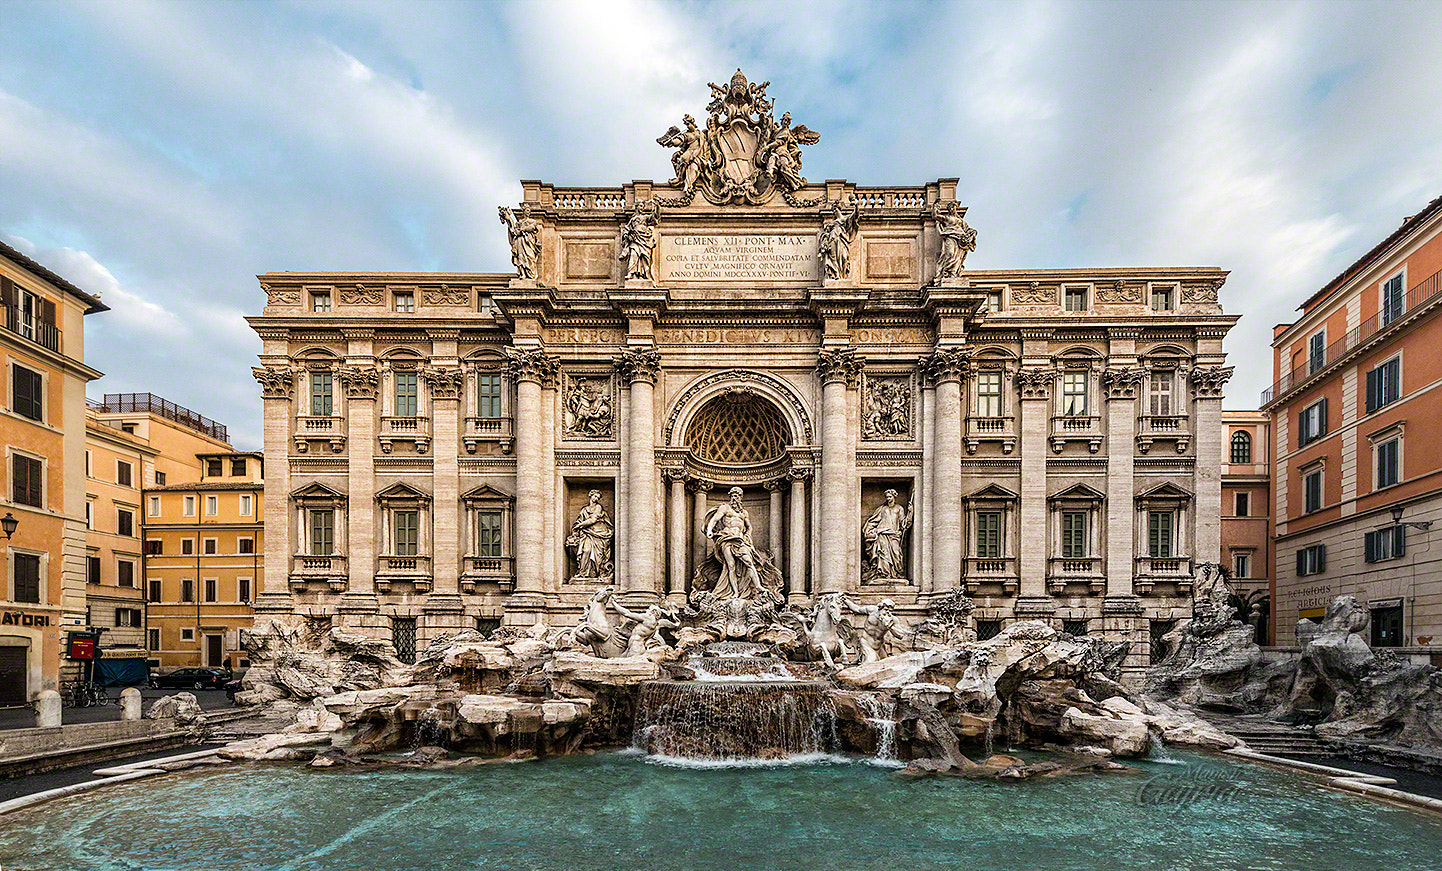 Photograph Fontana di Trevi by Manish Gajria on 500px